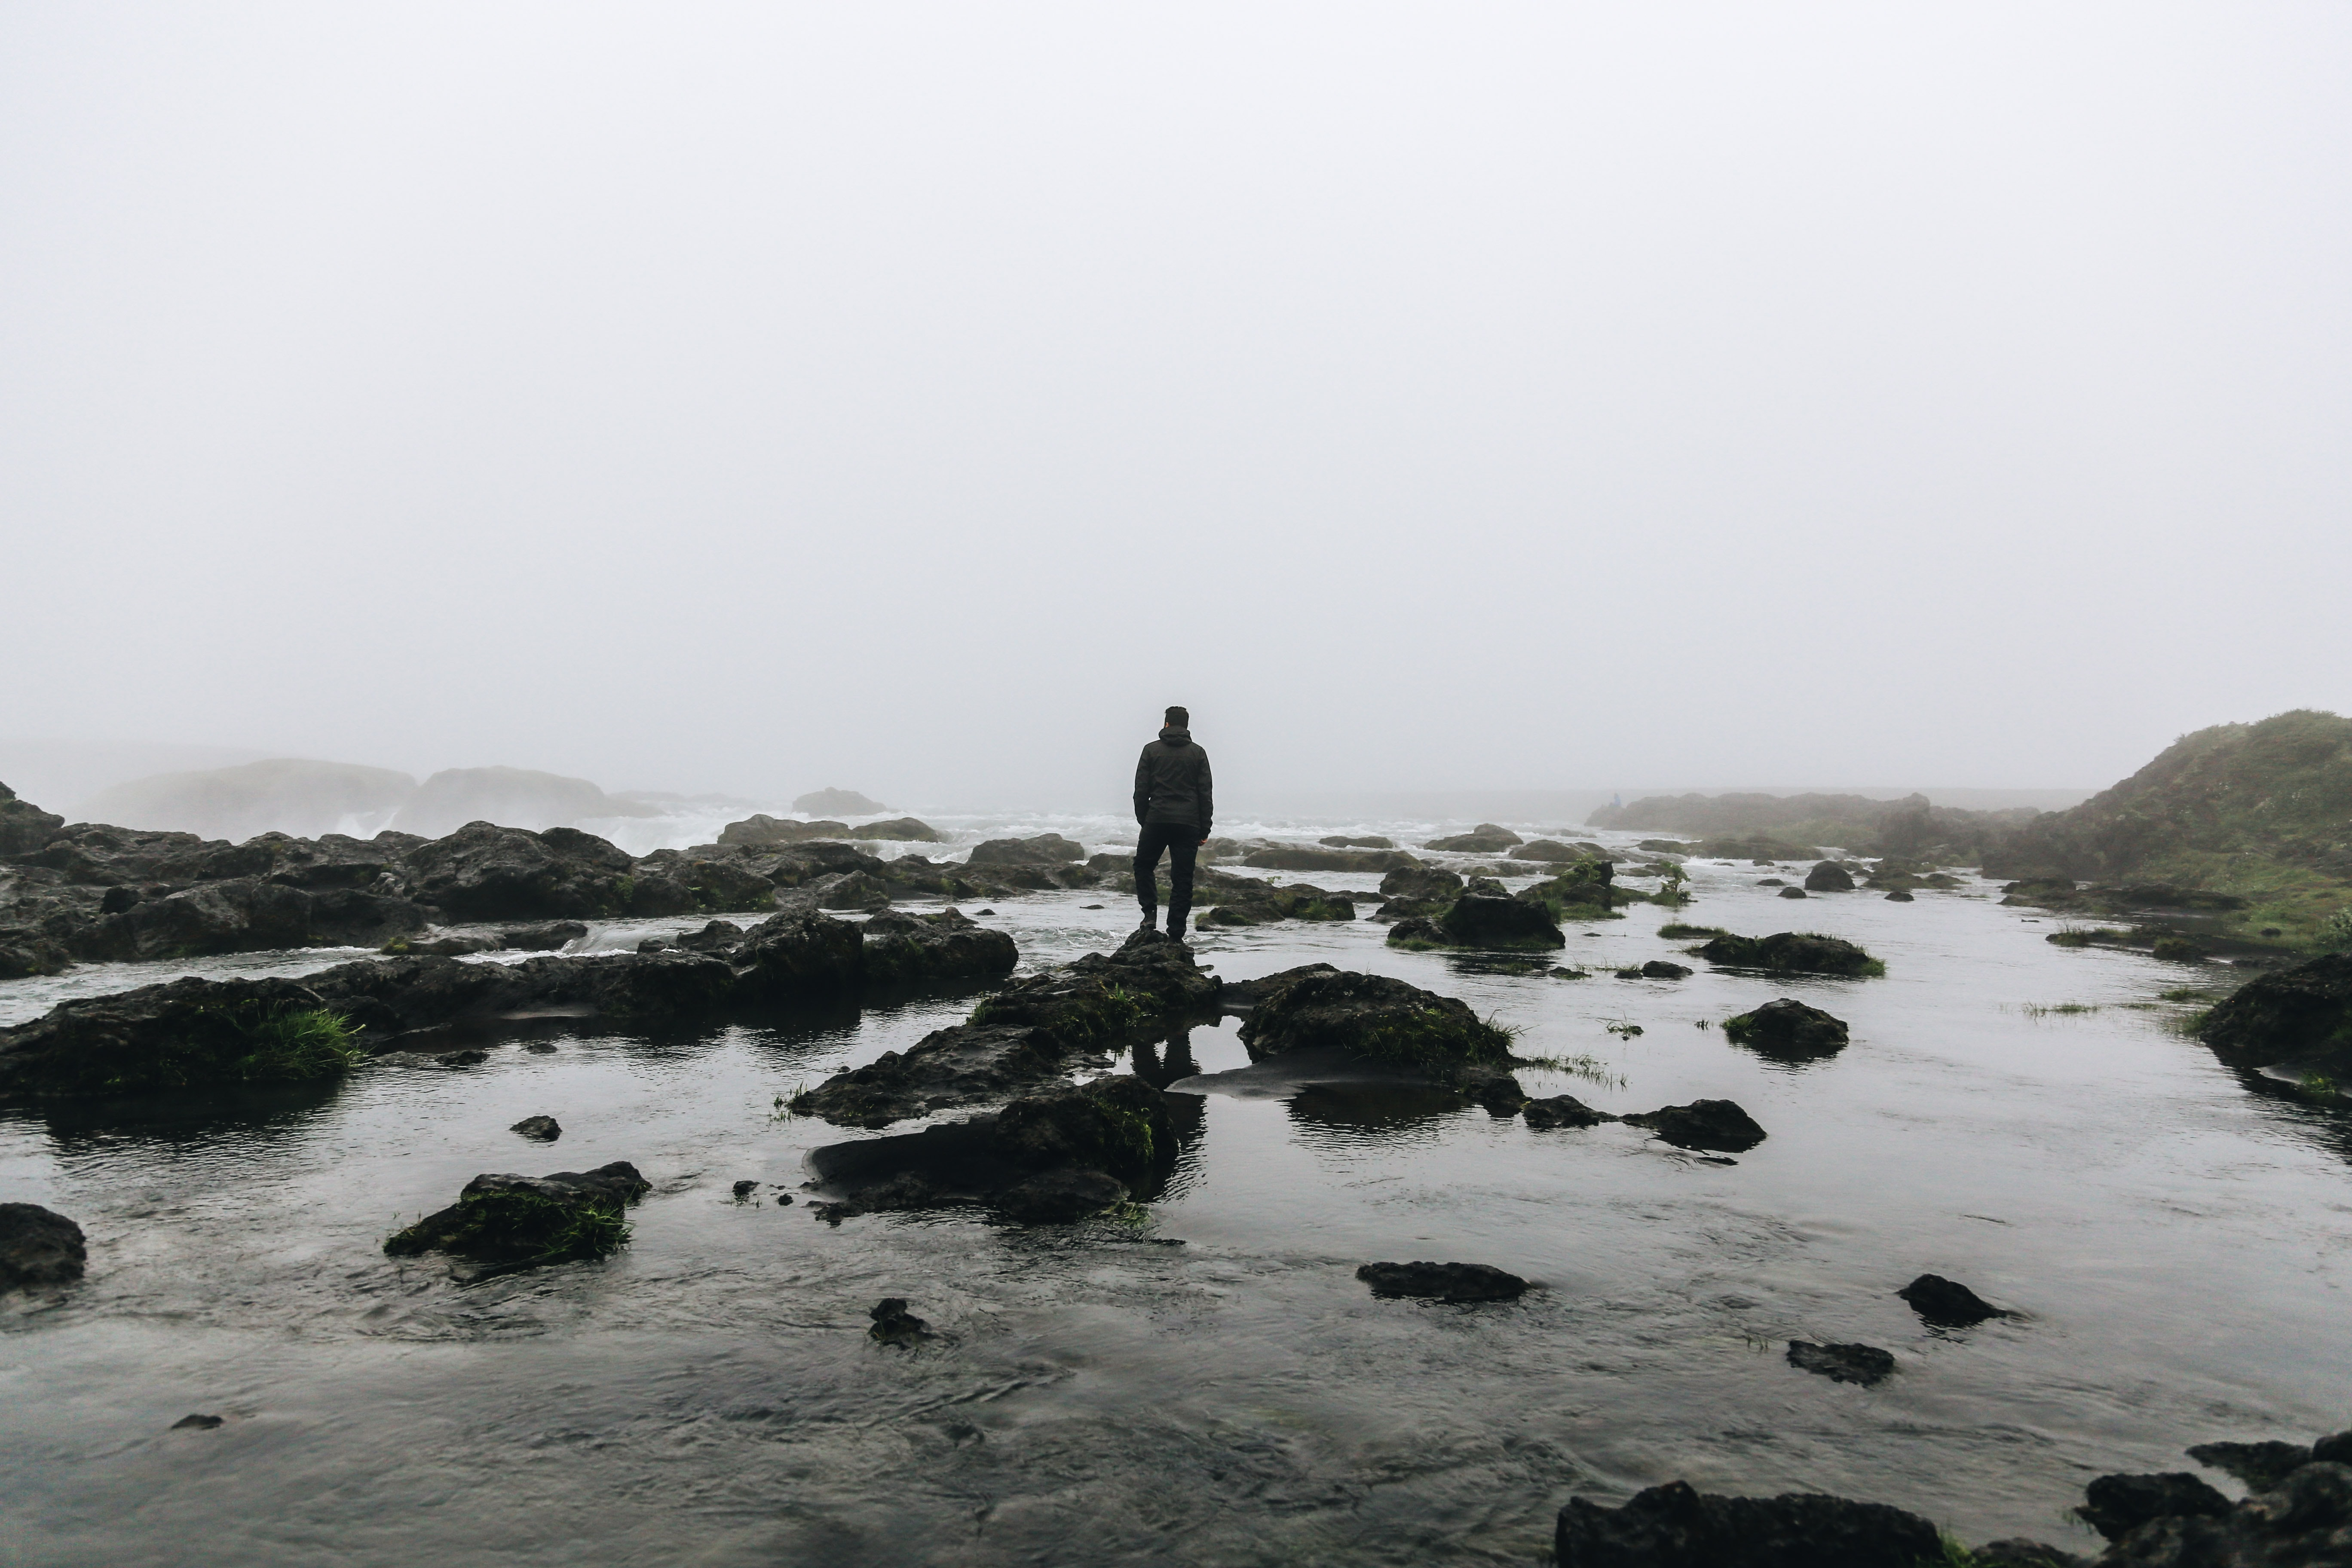 silhouette of person standing on stone surrounded by water during daytime